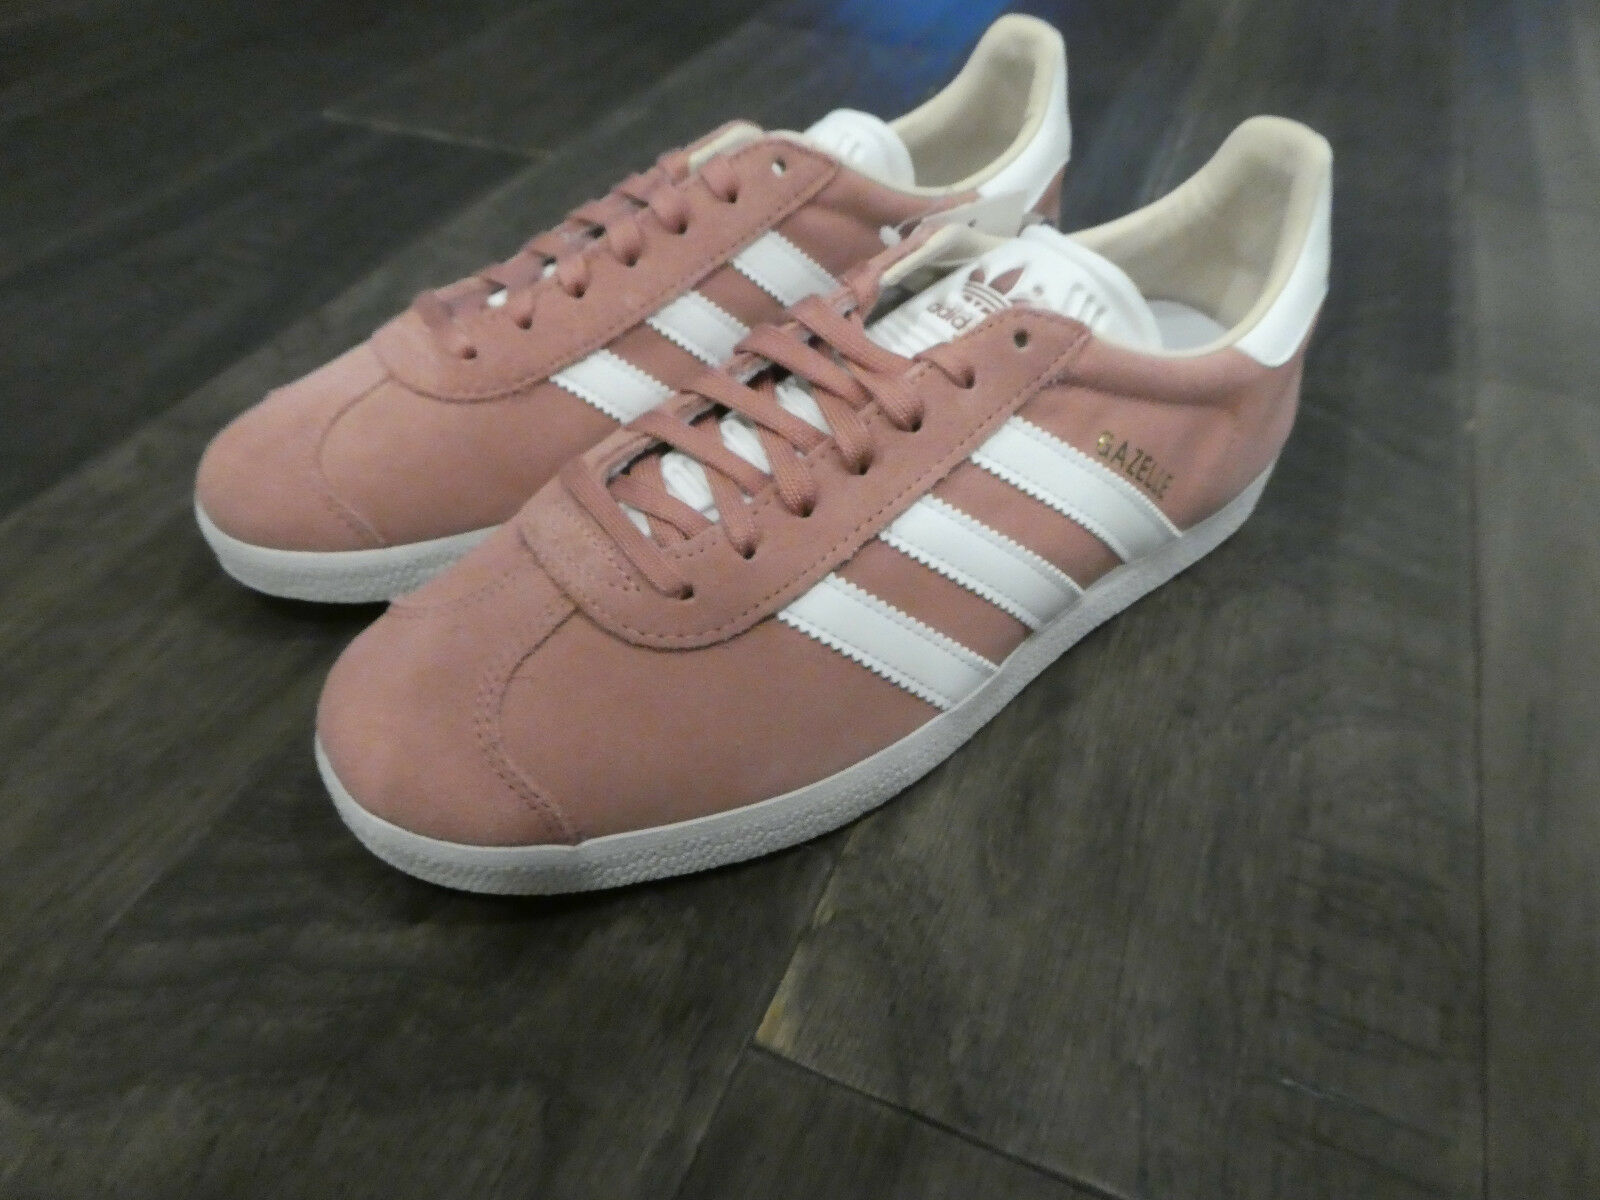 Adidas Women's Gazelle shoes sneakers new CQ2186 suede Ash Pink